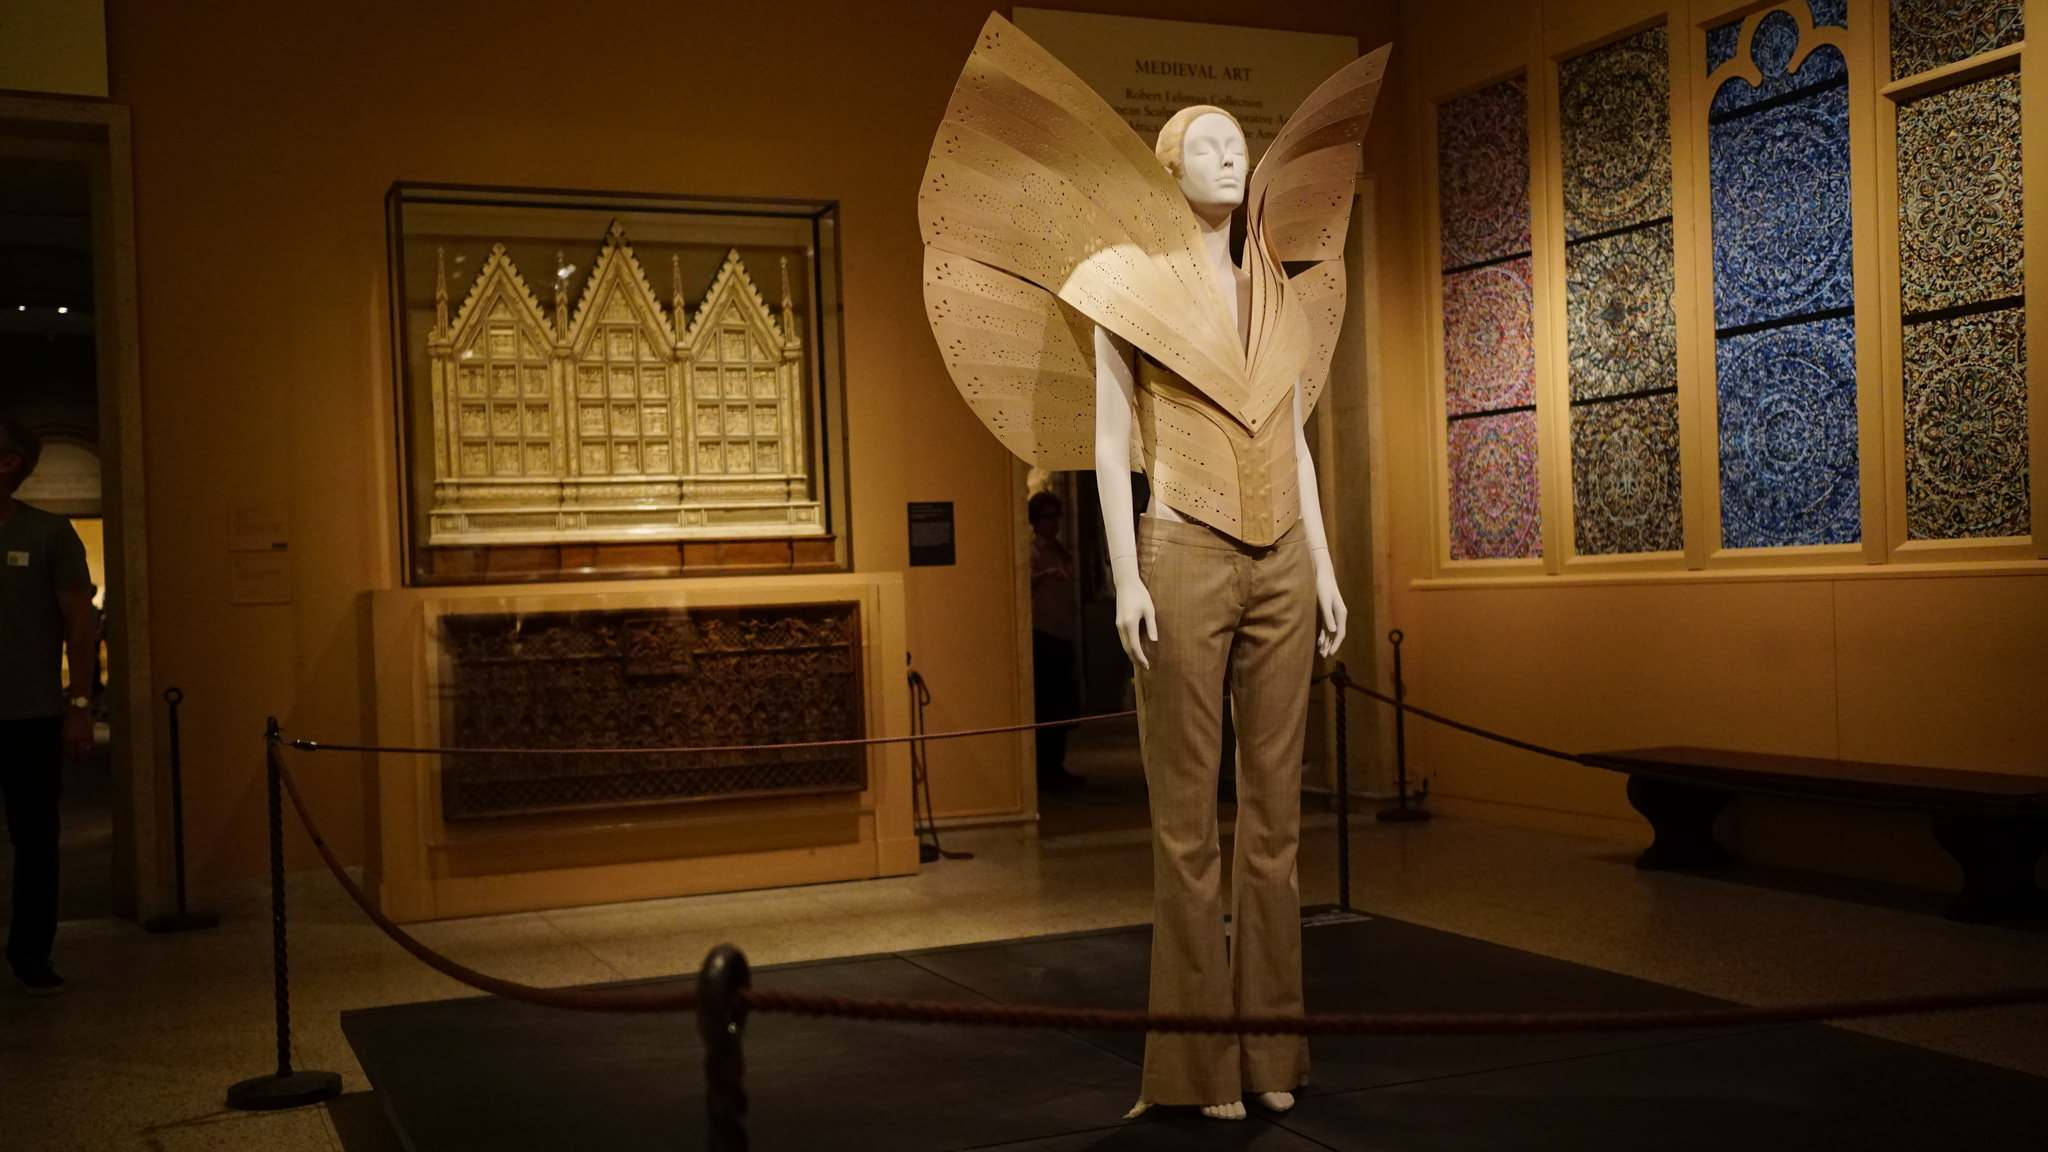 heavenly bodies12 Heavenly Bodies: Fashion and the Catholic Imagination in MET